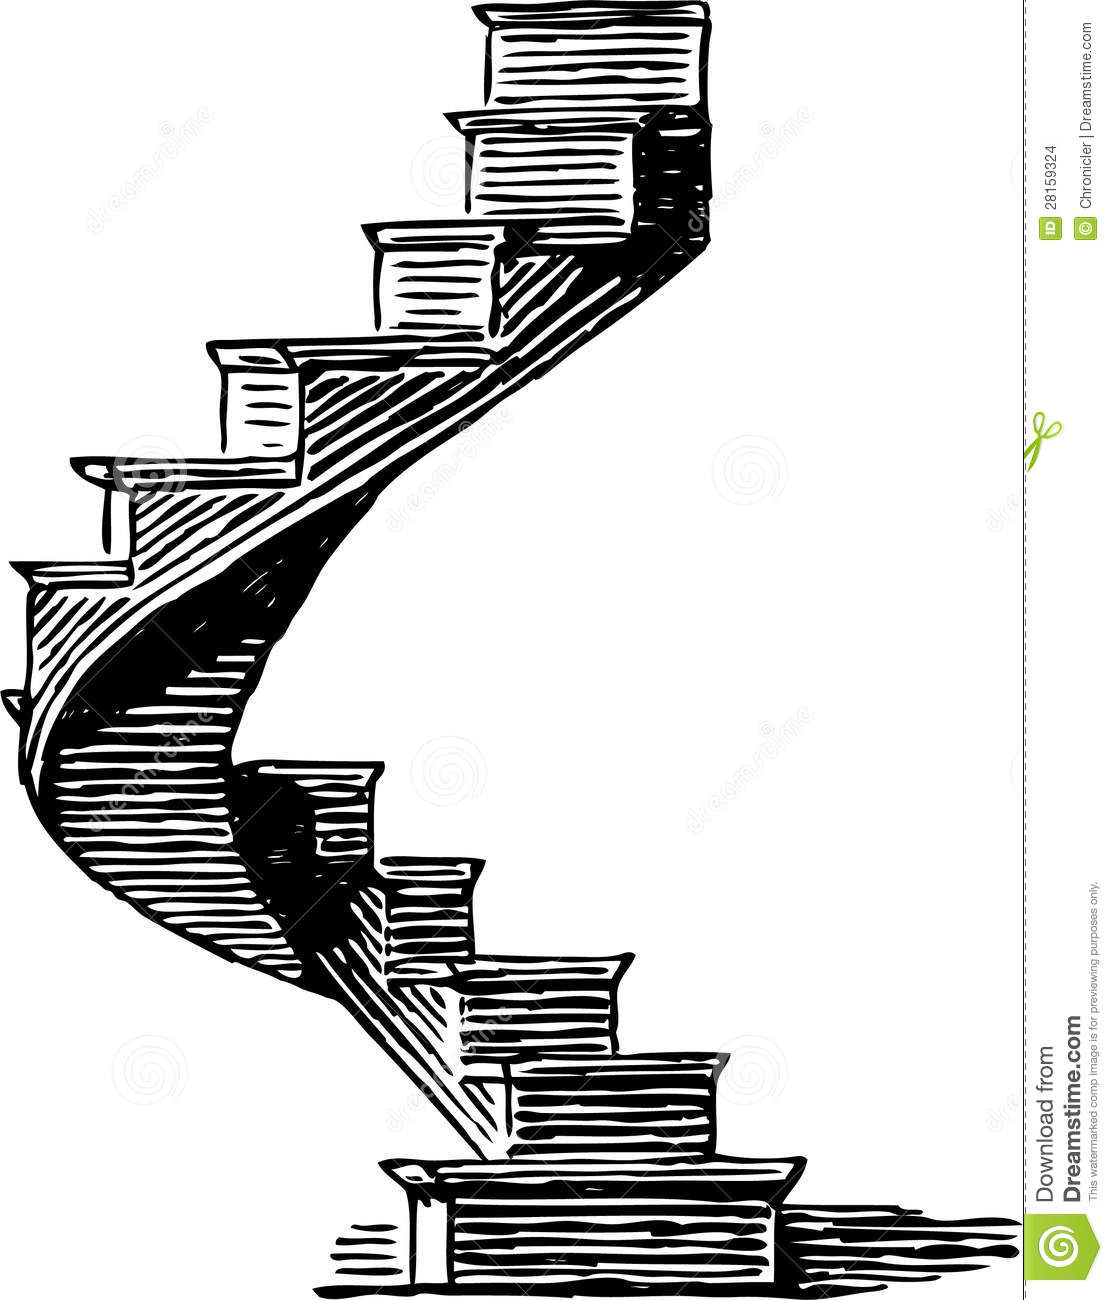 Book clipart staircase Stairway Free Clipart stairway%20clipart Images